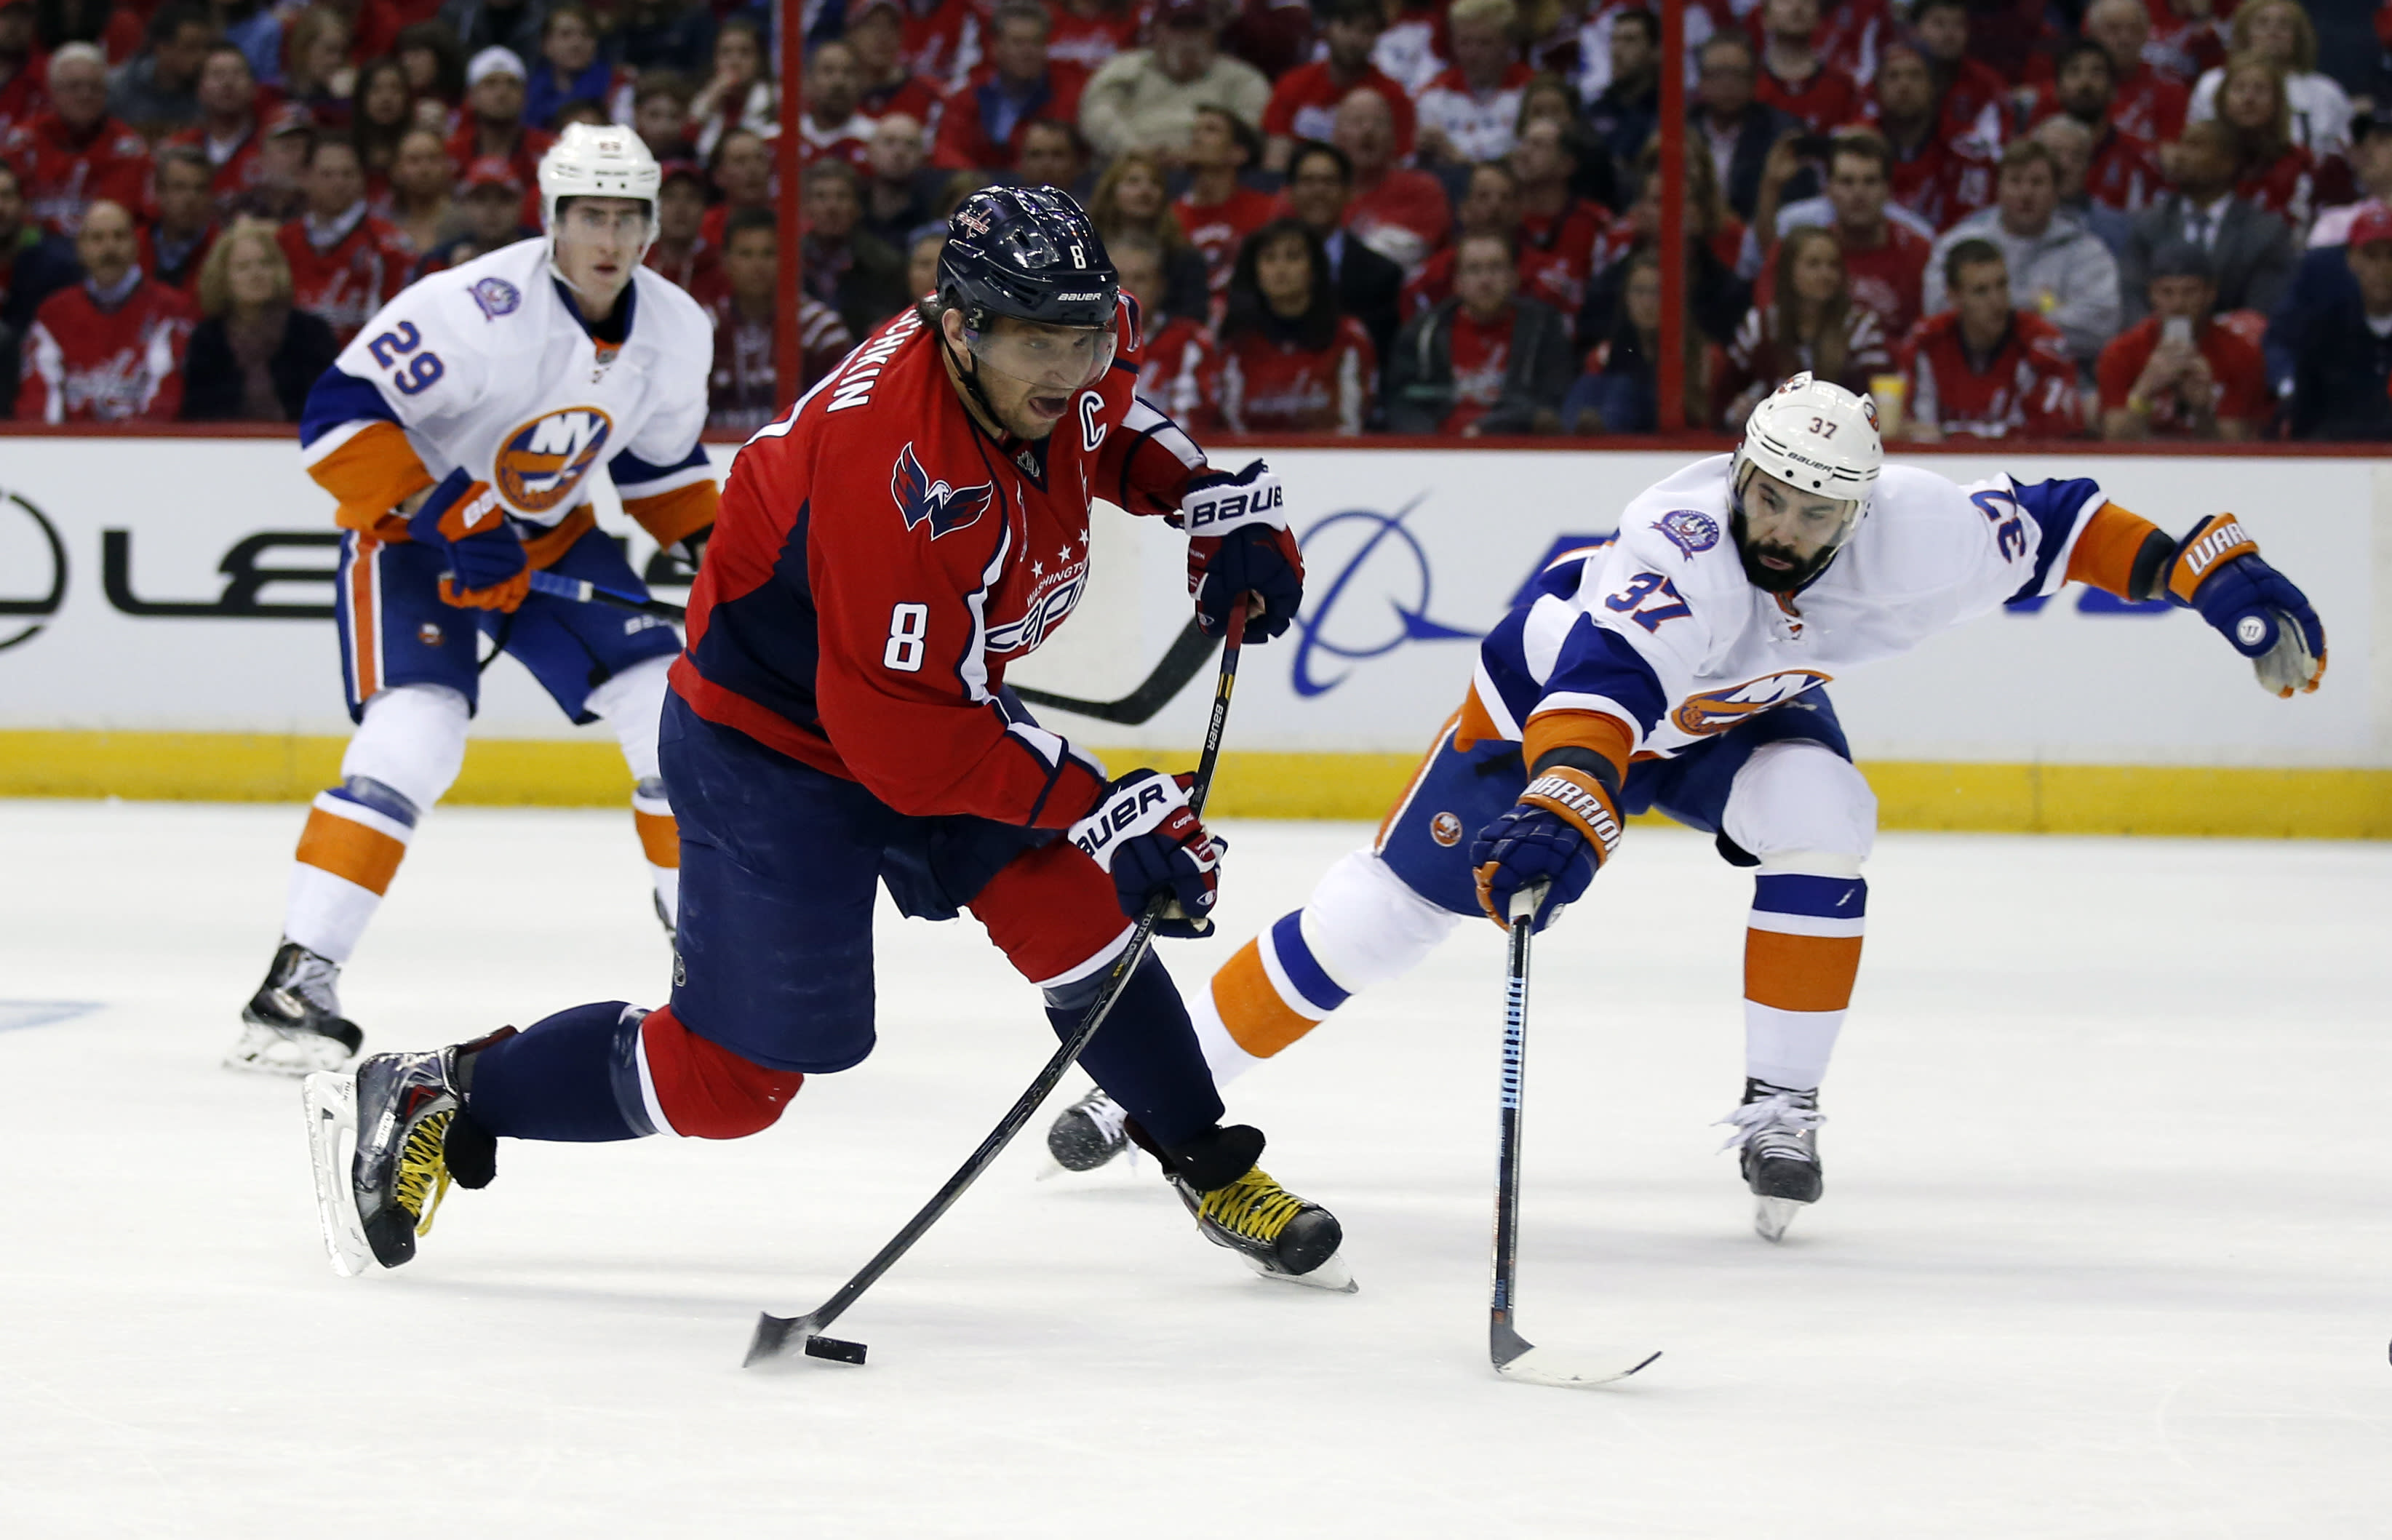 Dynamic Duos hoping to carry the day in NHL playoffs